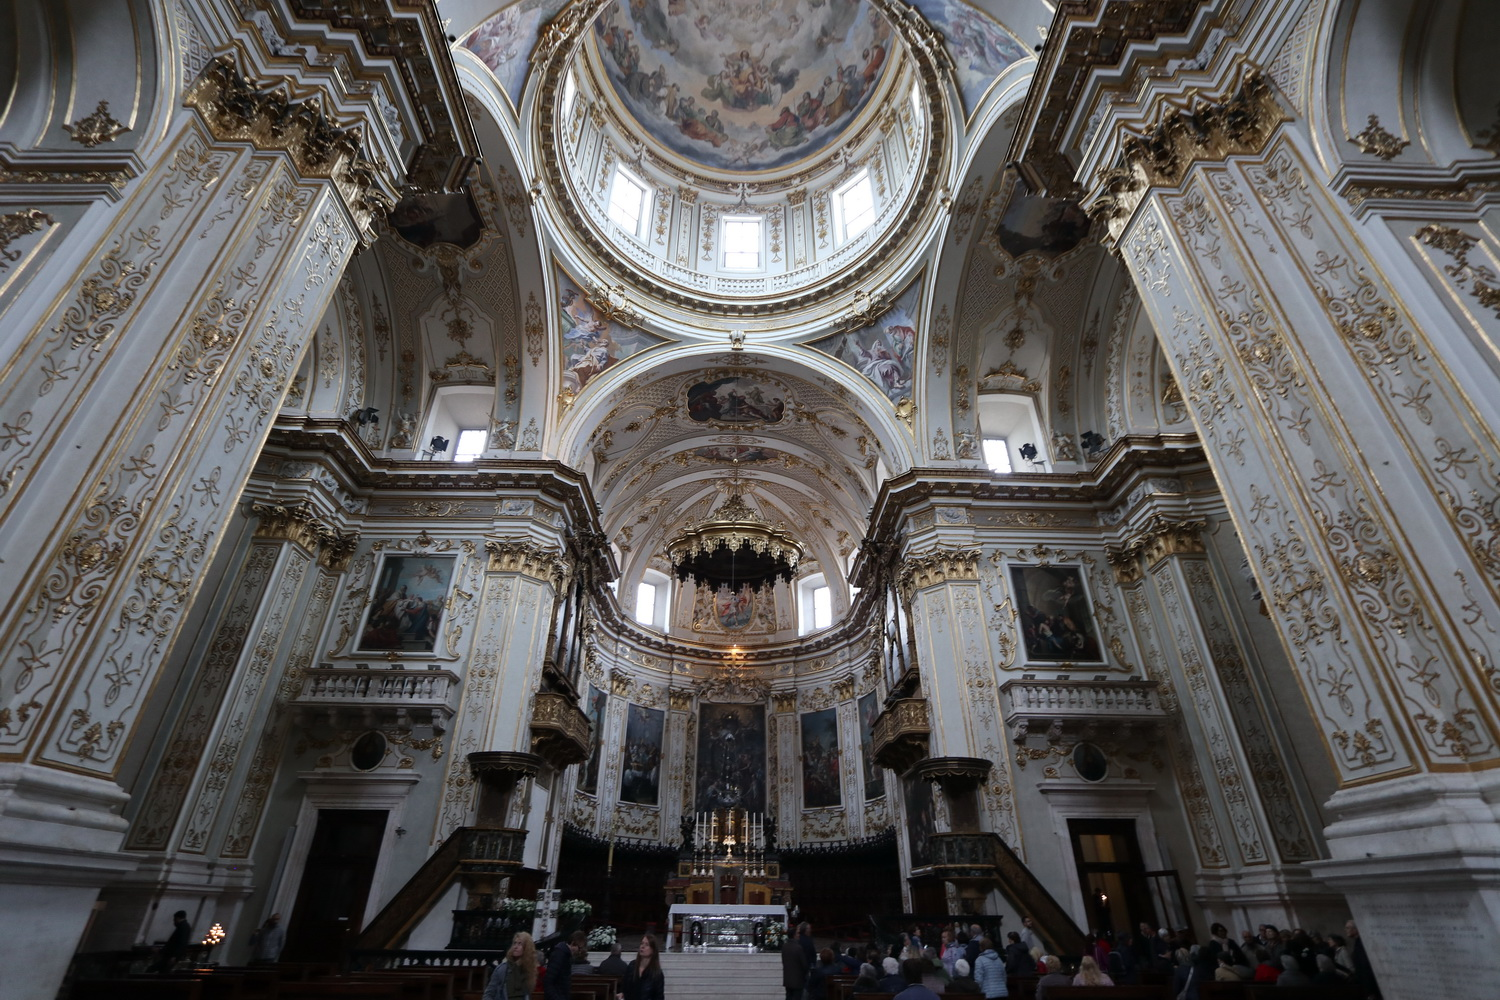 Barock in der Kathedrale S.Alessandro